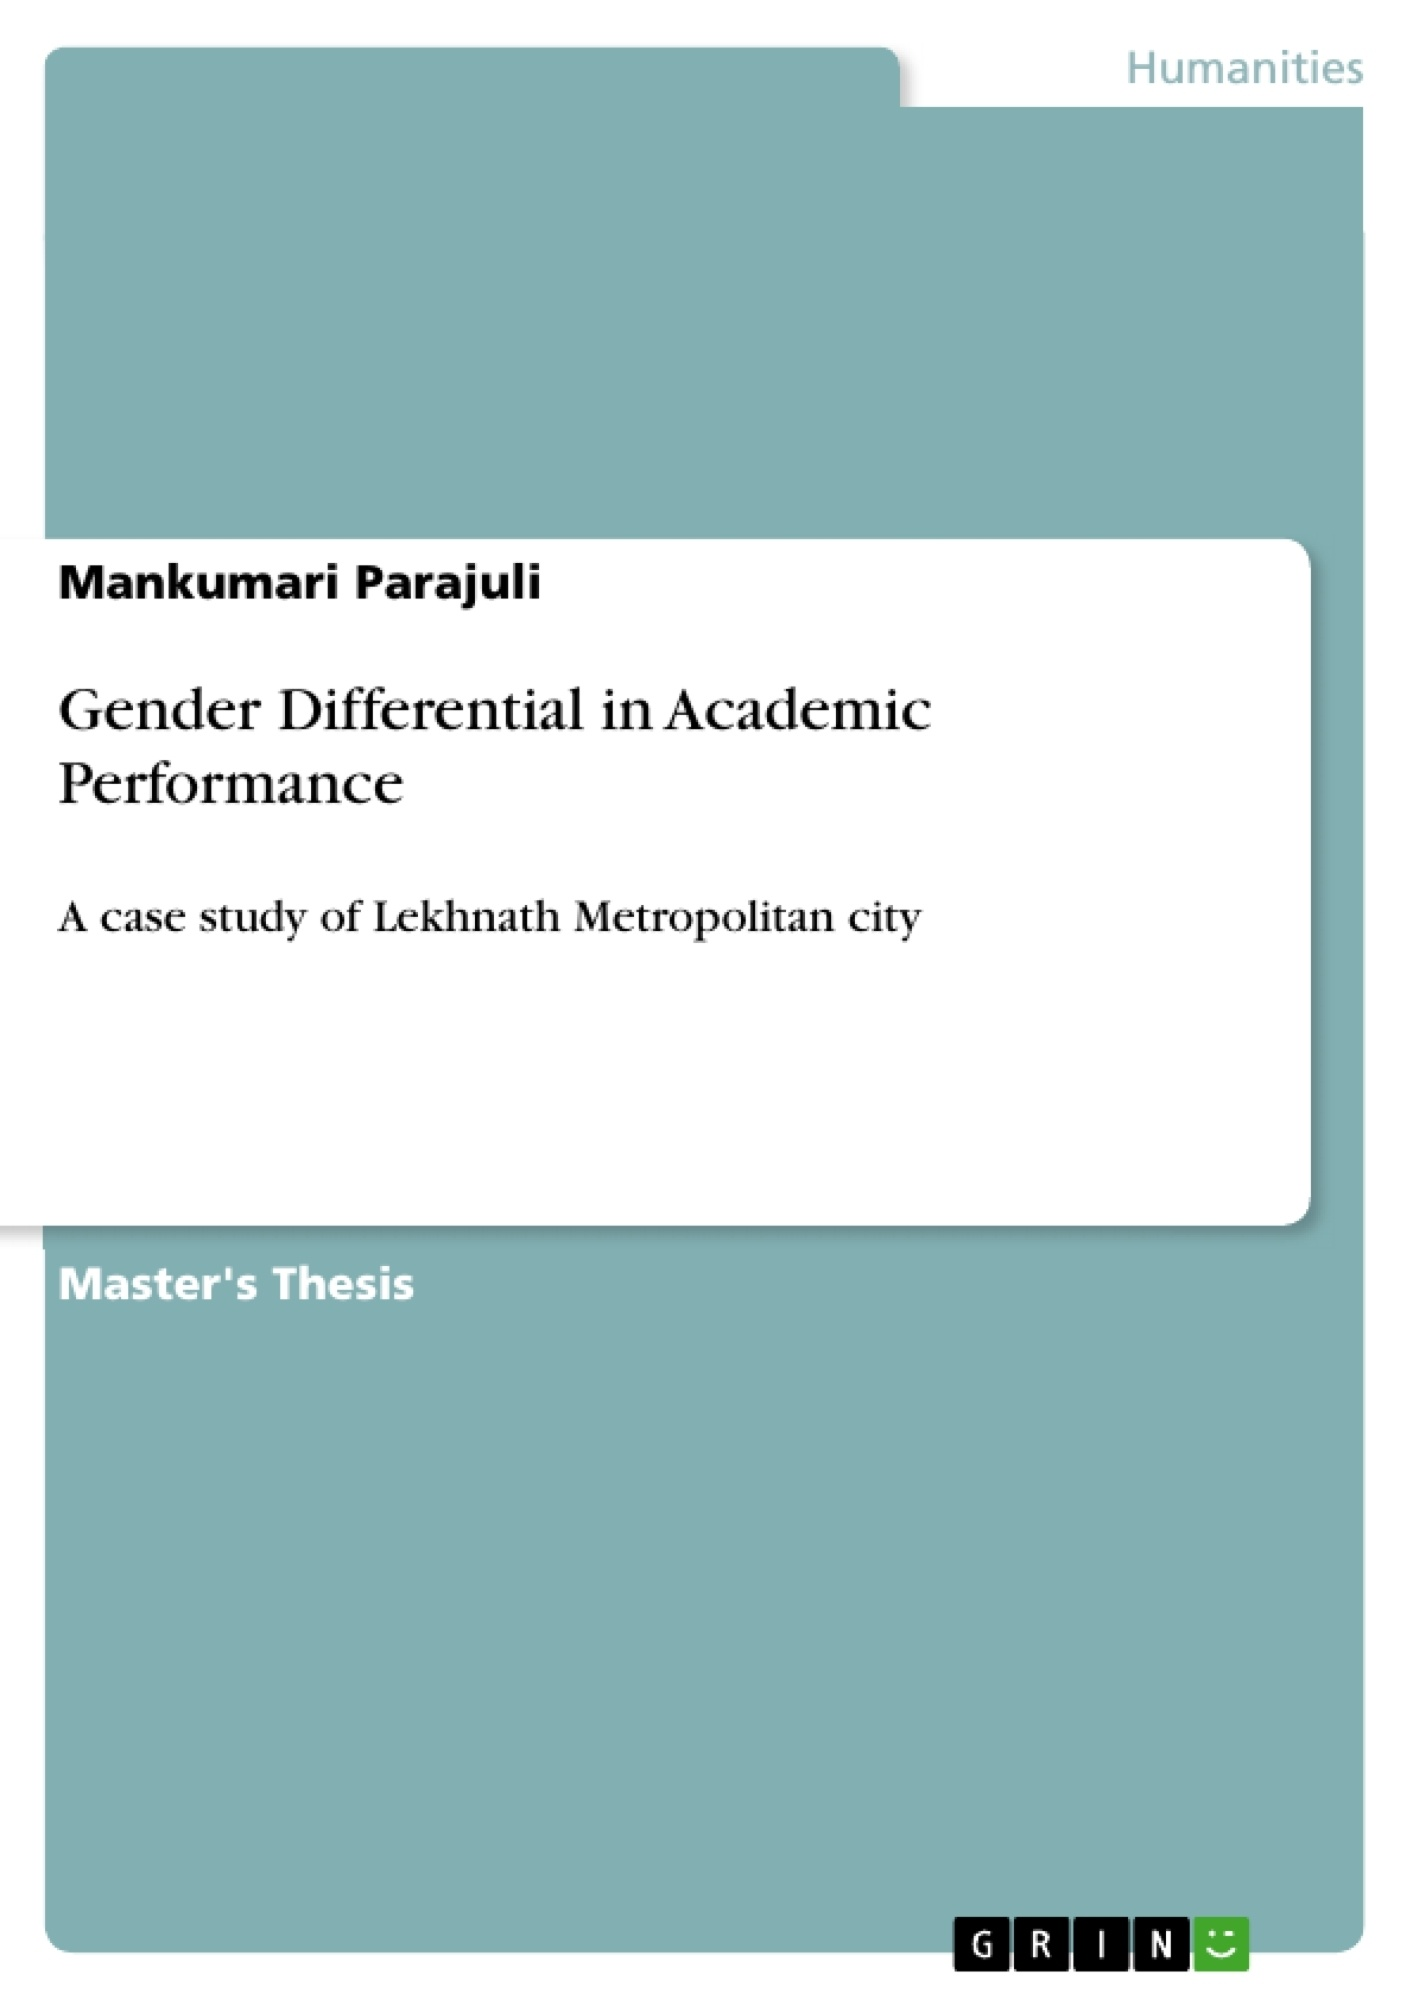 Title: Gender Differential in Academic Performance